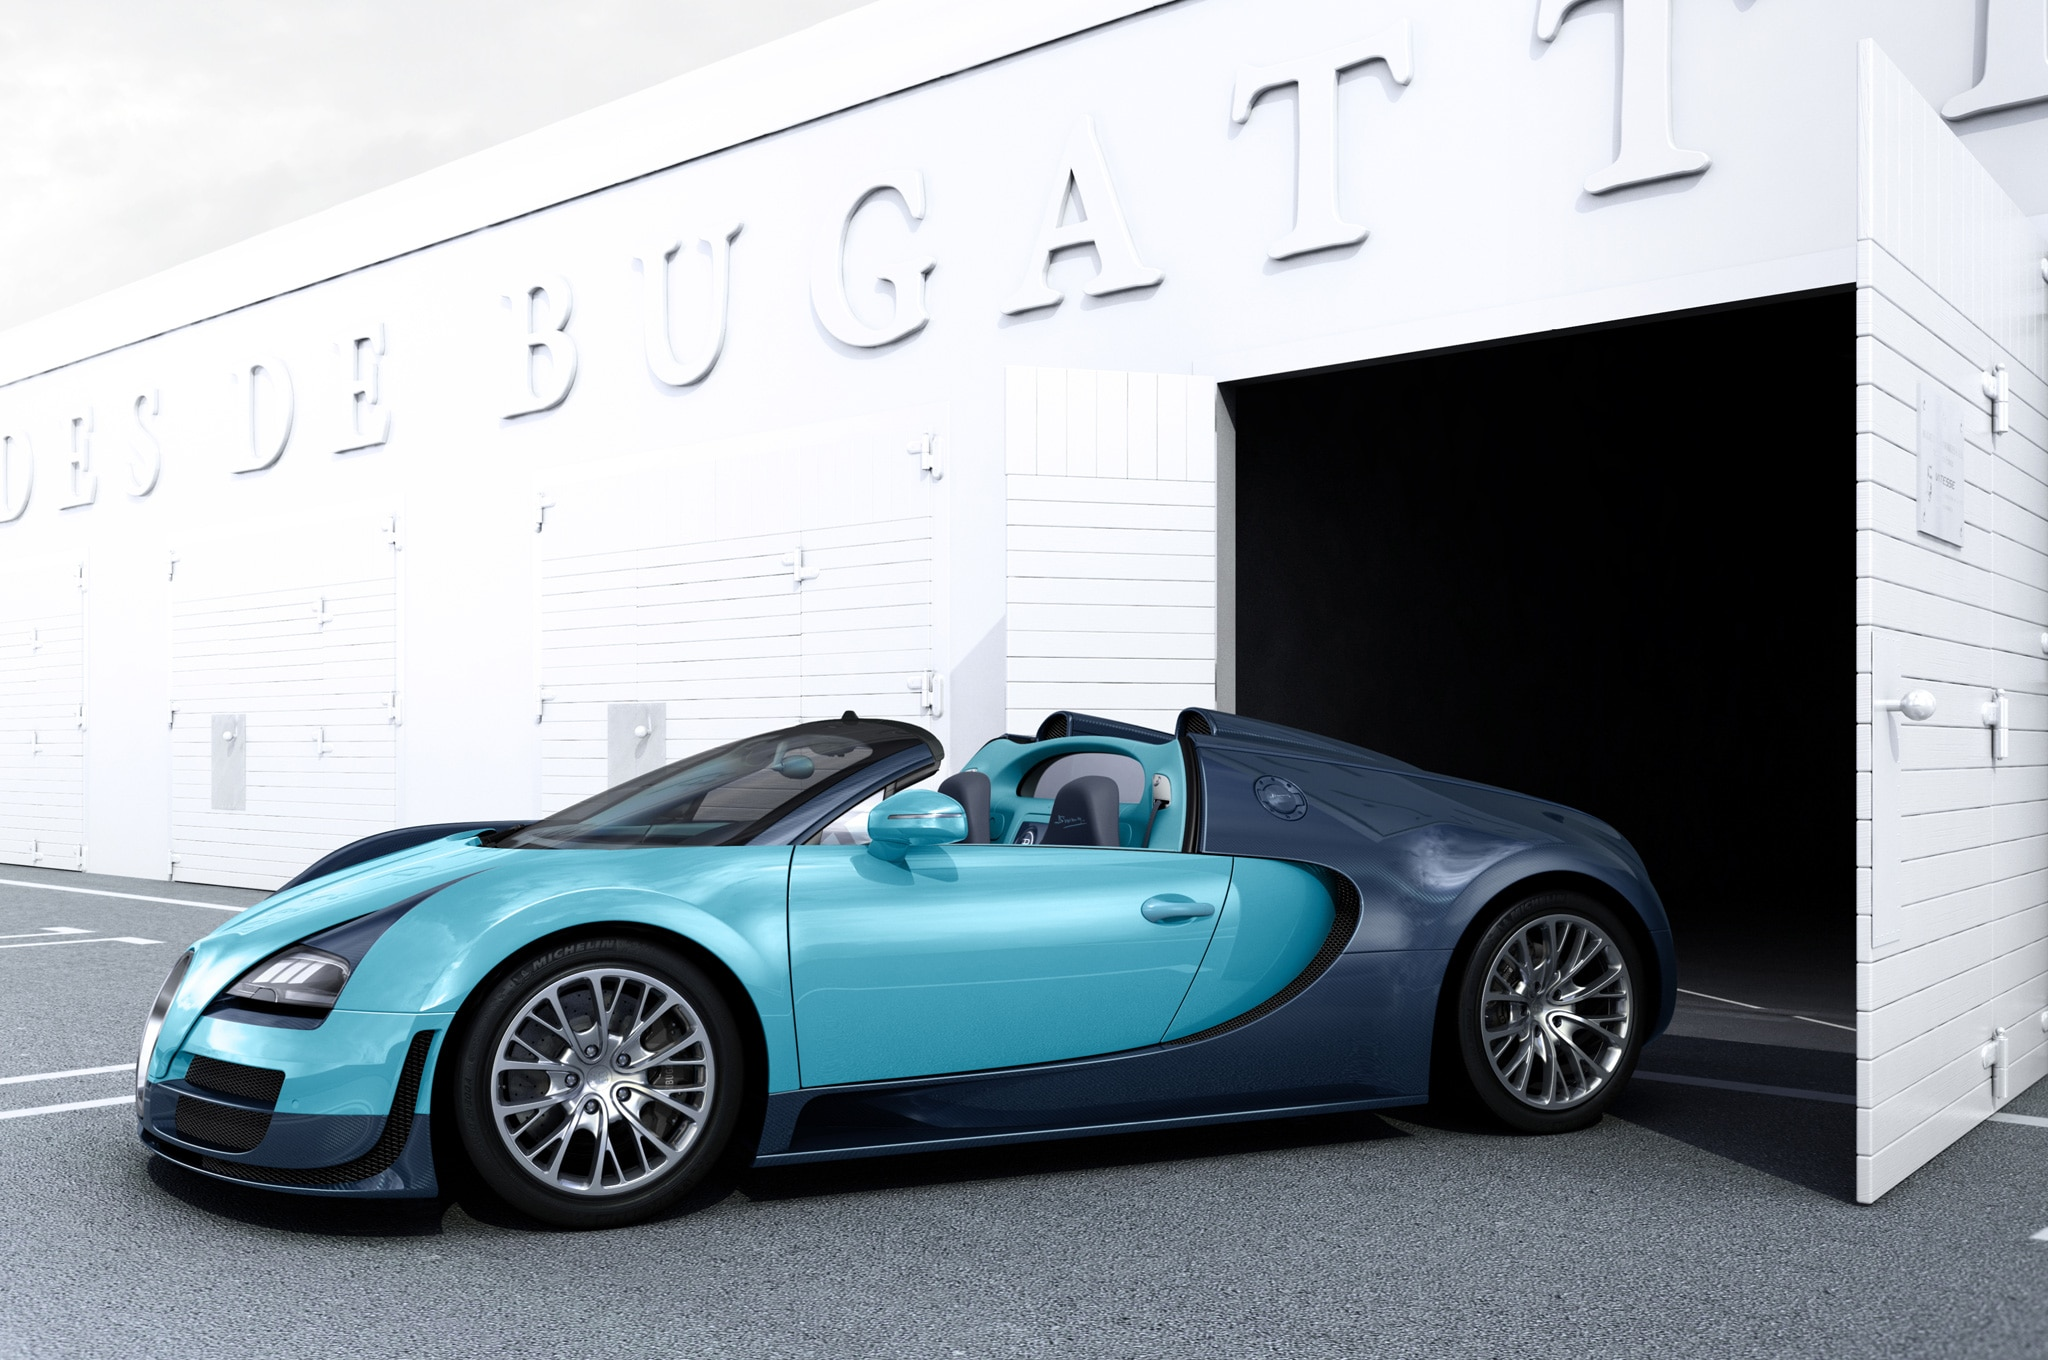 bugatti veyron legends series debuts at pebble beach concours. Black Bedroom Furniture Sets. Home Design Ideas